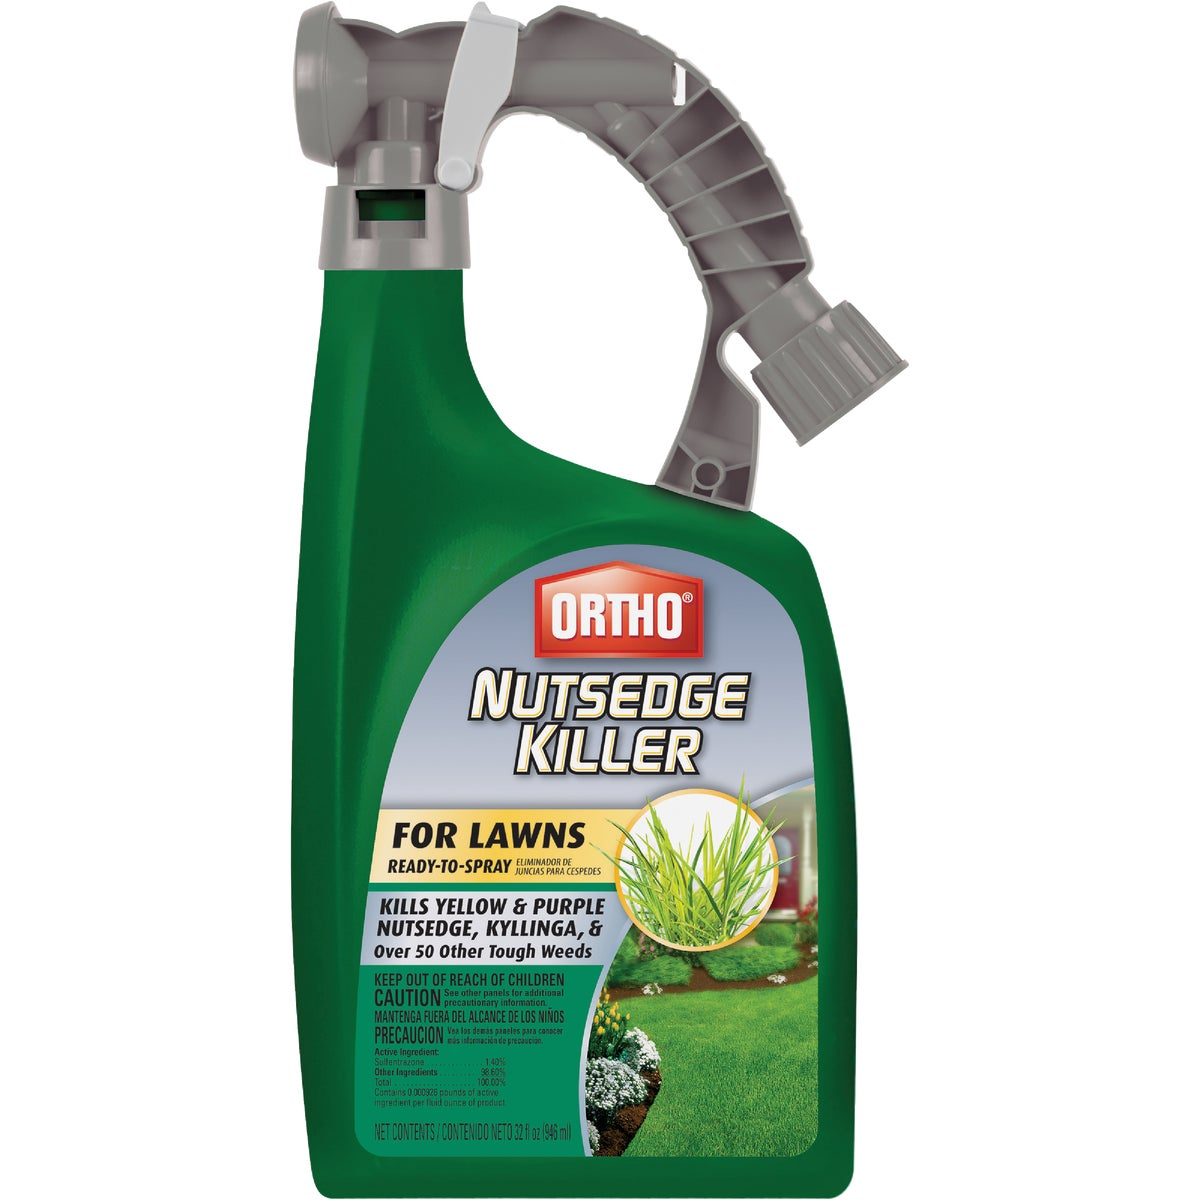 32OZ RTS NUTSEDGE KILLER - 9901910 by Scotts Company